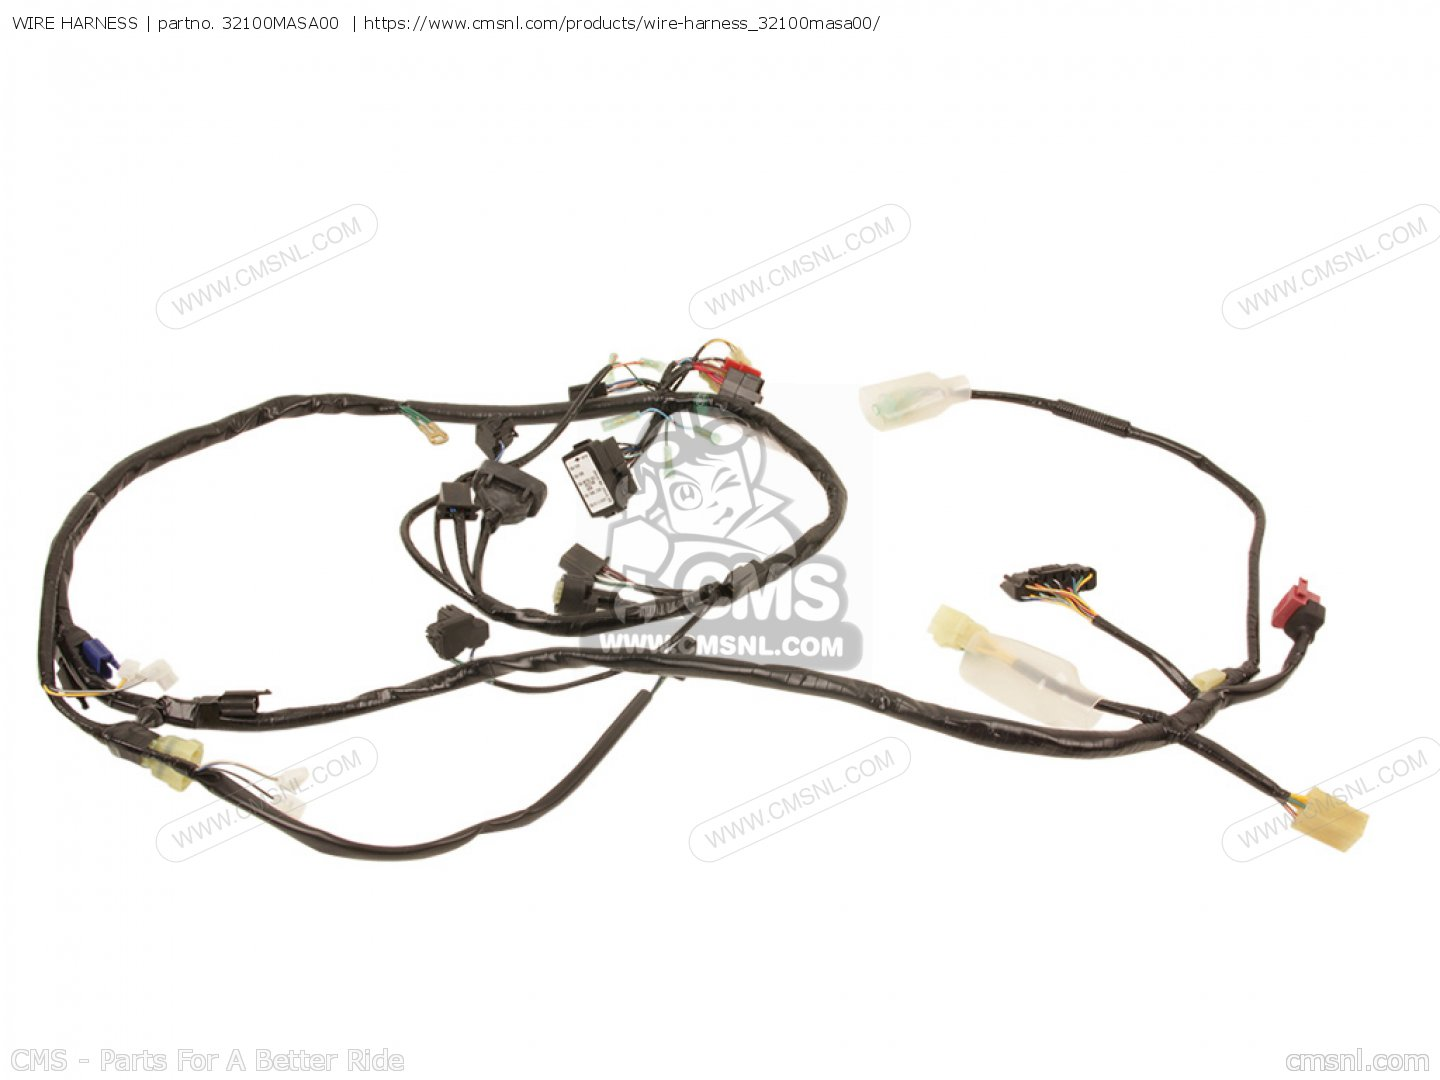 32100masa00 Wire Harness Honda Buy The 32100 Mas A00 At Cmsnl Phillips Ballast Wiring Diagram Single Phase 208